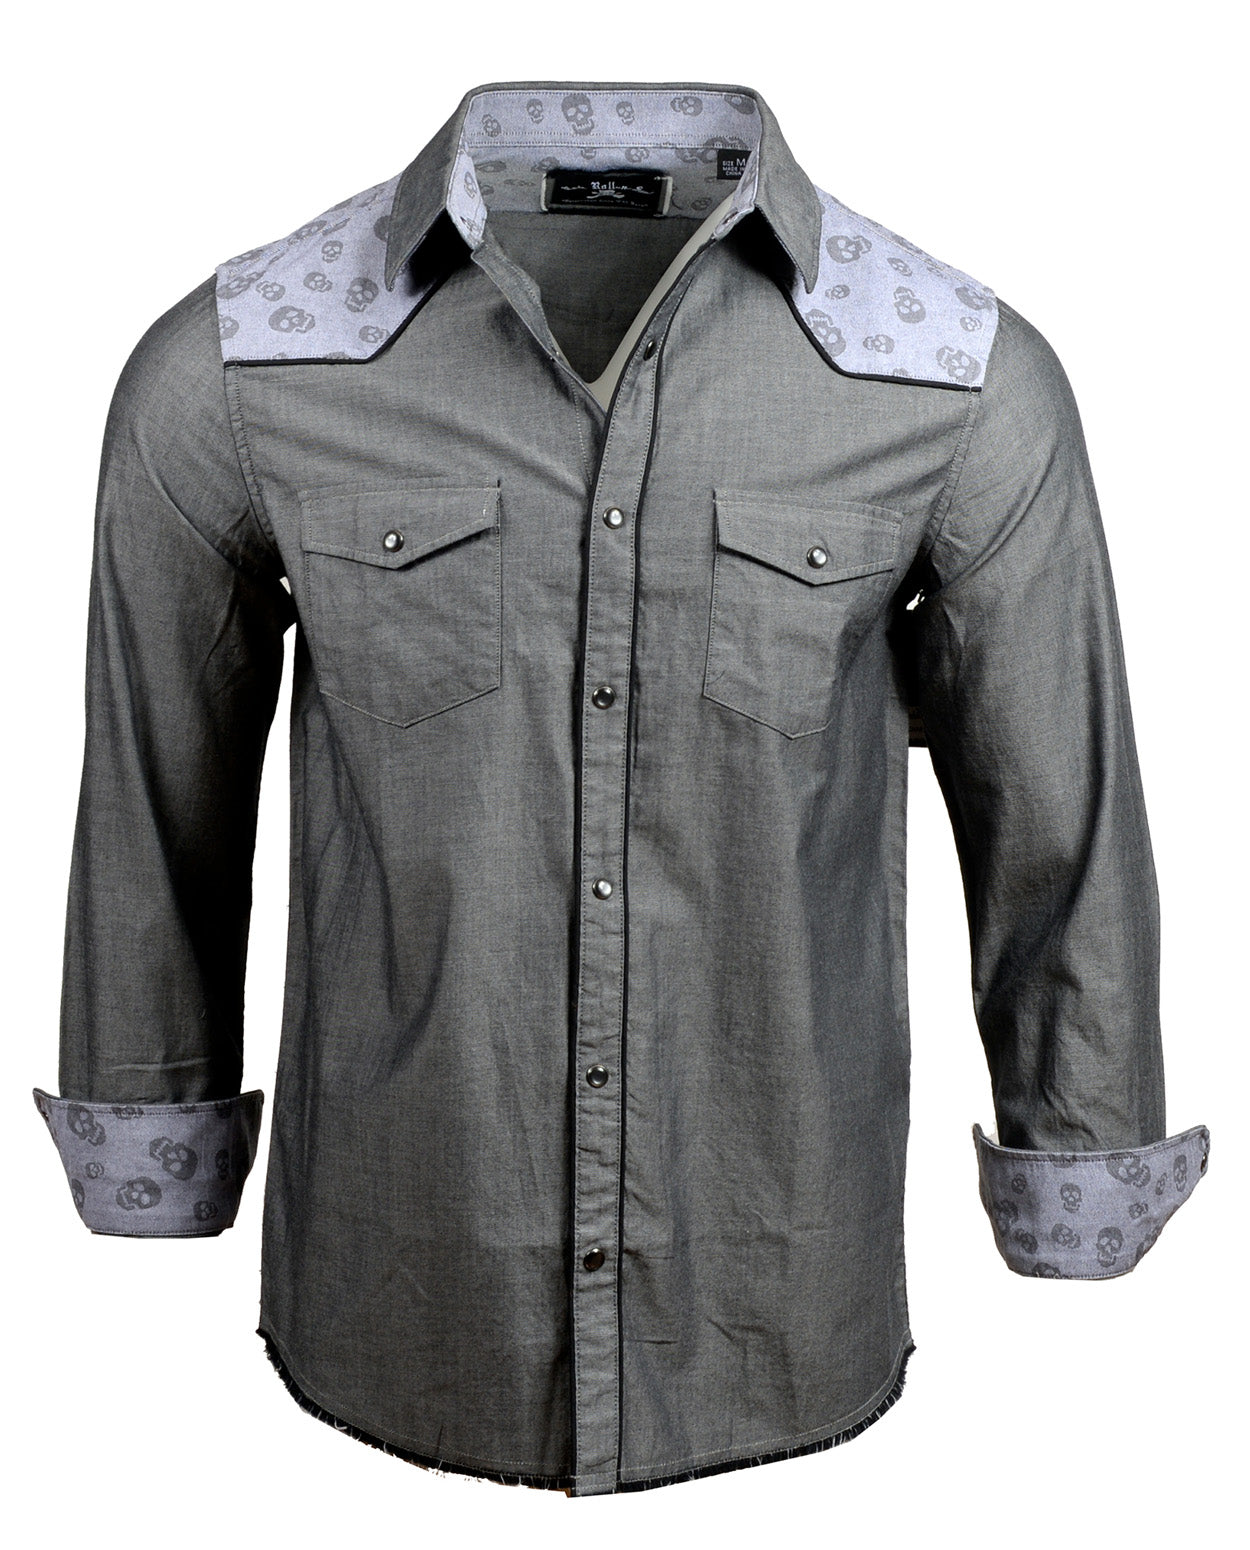 Men's Western Button Up Shirt - Tumble & Twirl by Rock Roll n Soul